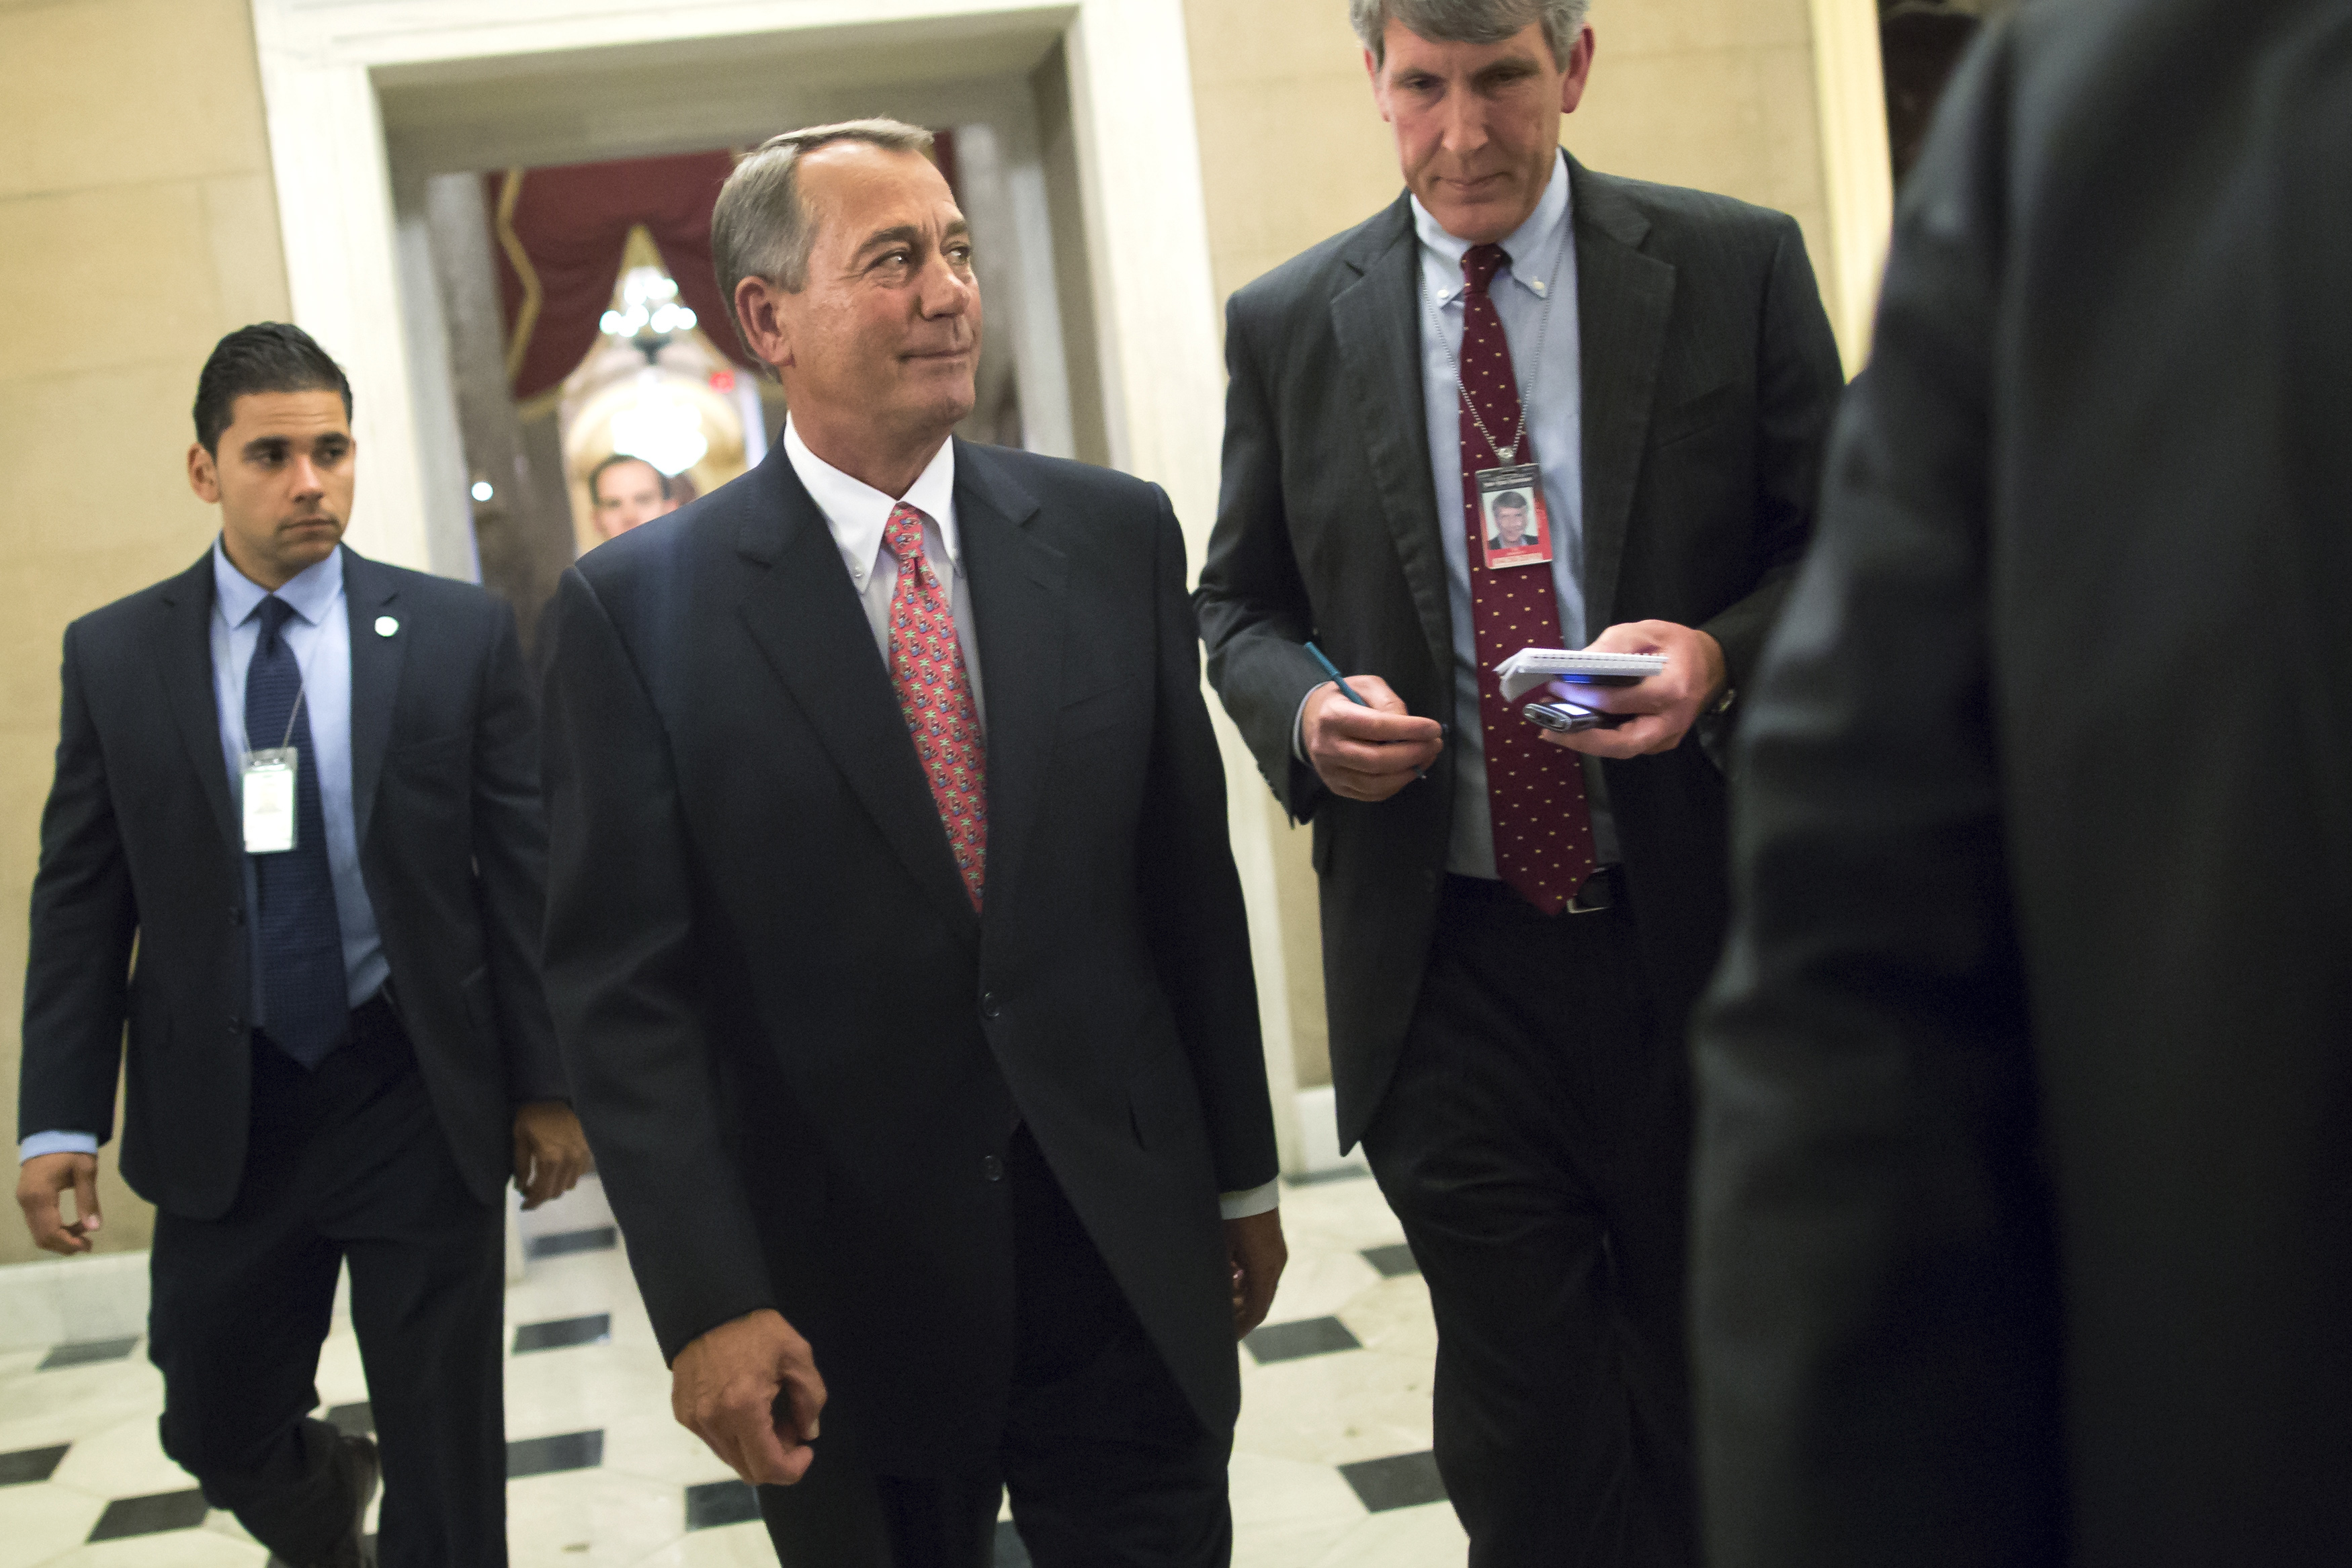 Boehner walks to his office after passage of spending bill on the House floor at the U.S. Capitol in Washington